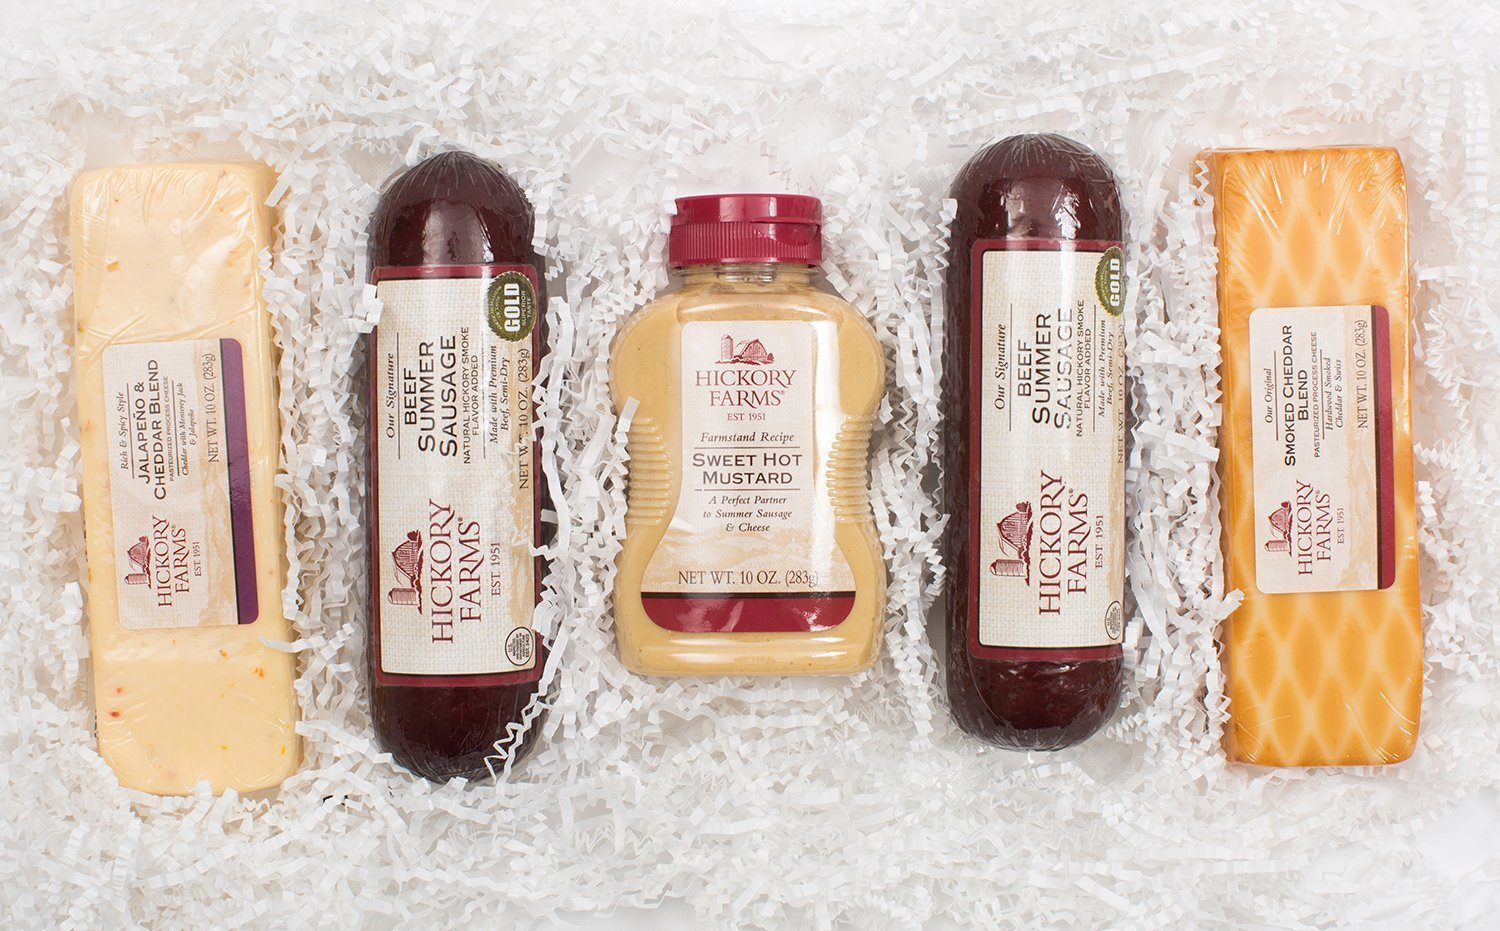 Amazon.com : Hickory Farms Deluxe Signature Beef Sausage & Cheese Gift Basket : Grocery & Gourmet Food